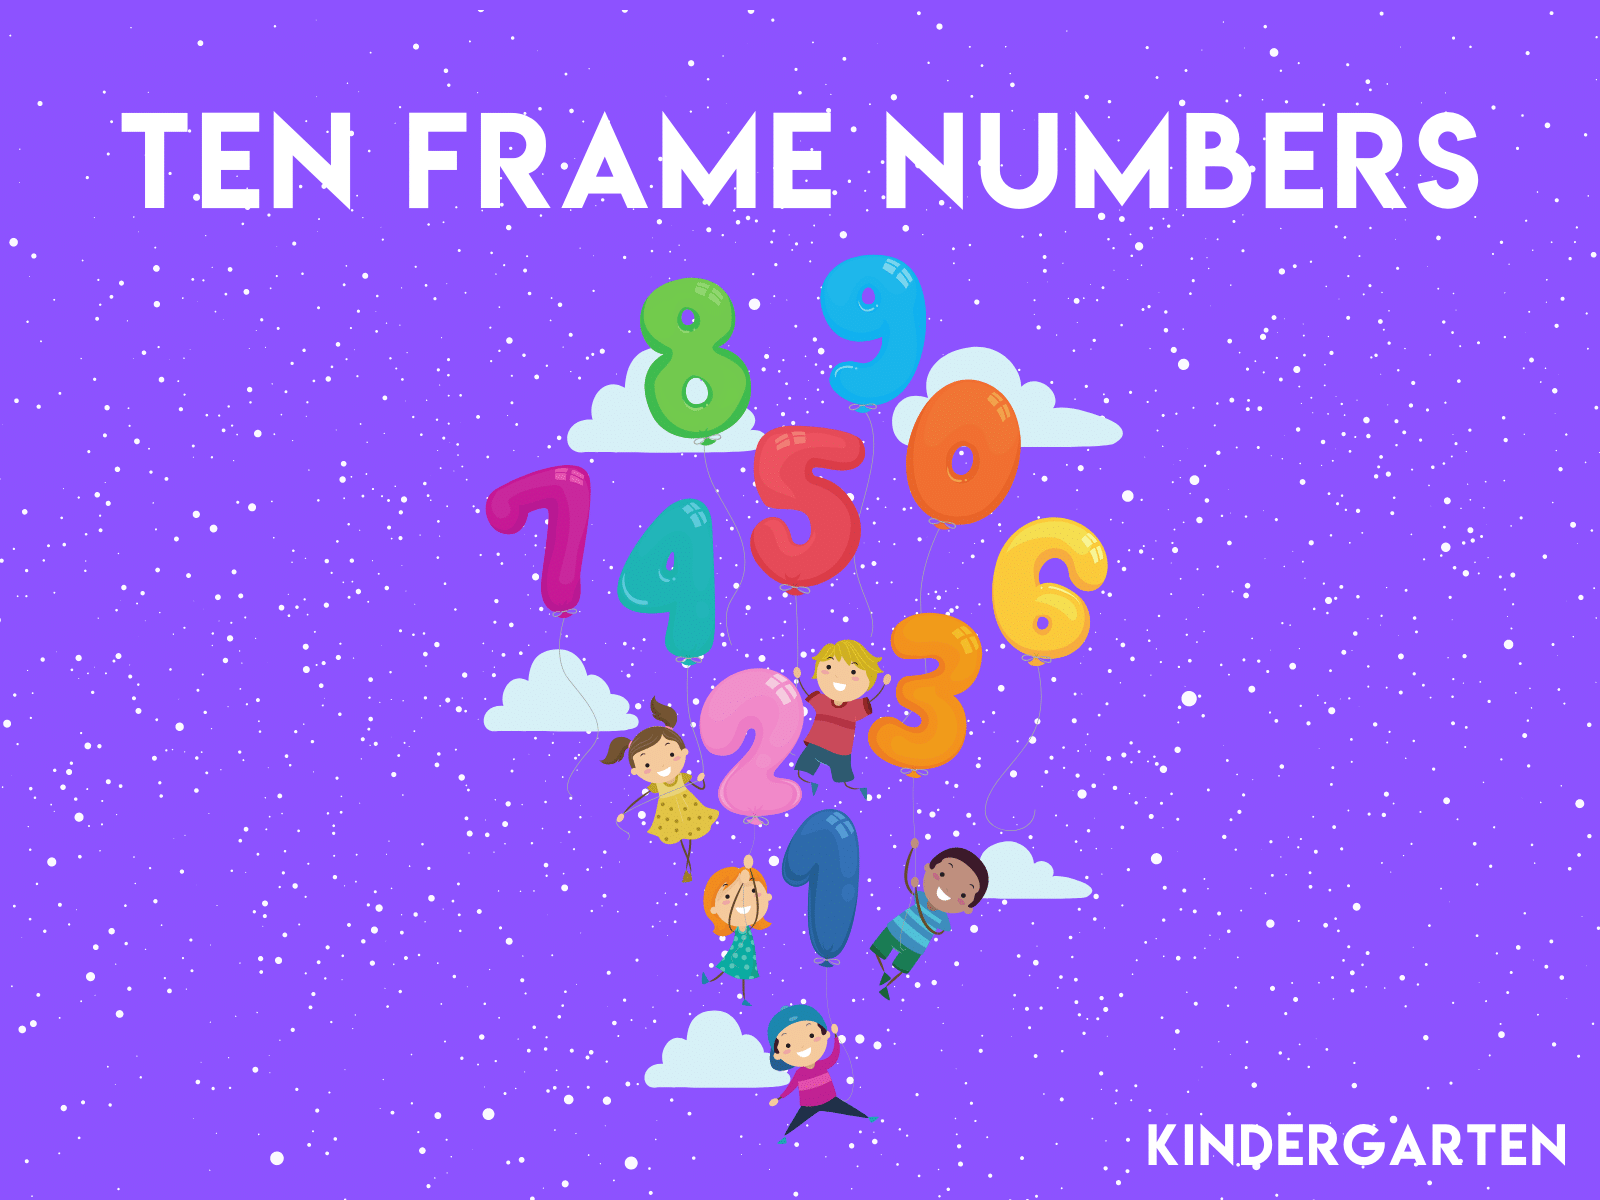 Learn numbers one through ten with this math learning exercise for kindergarten students.